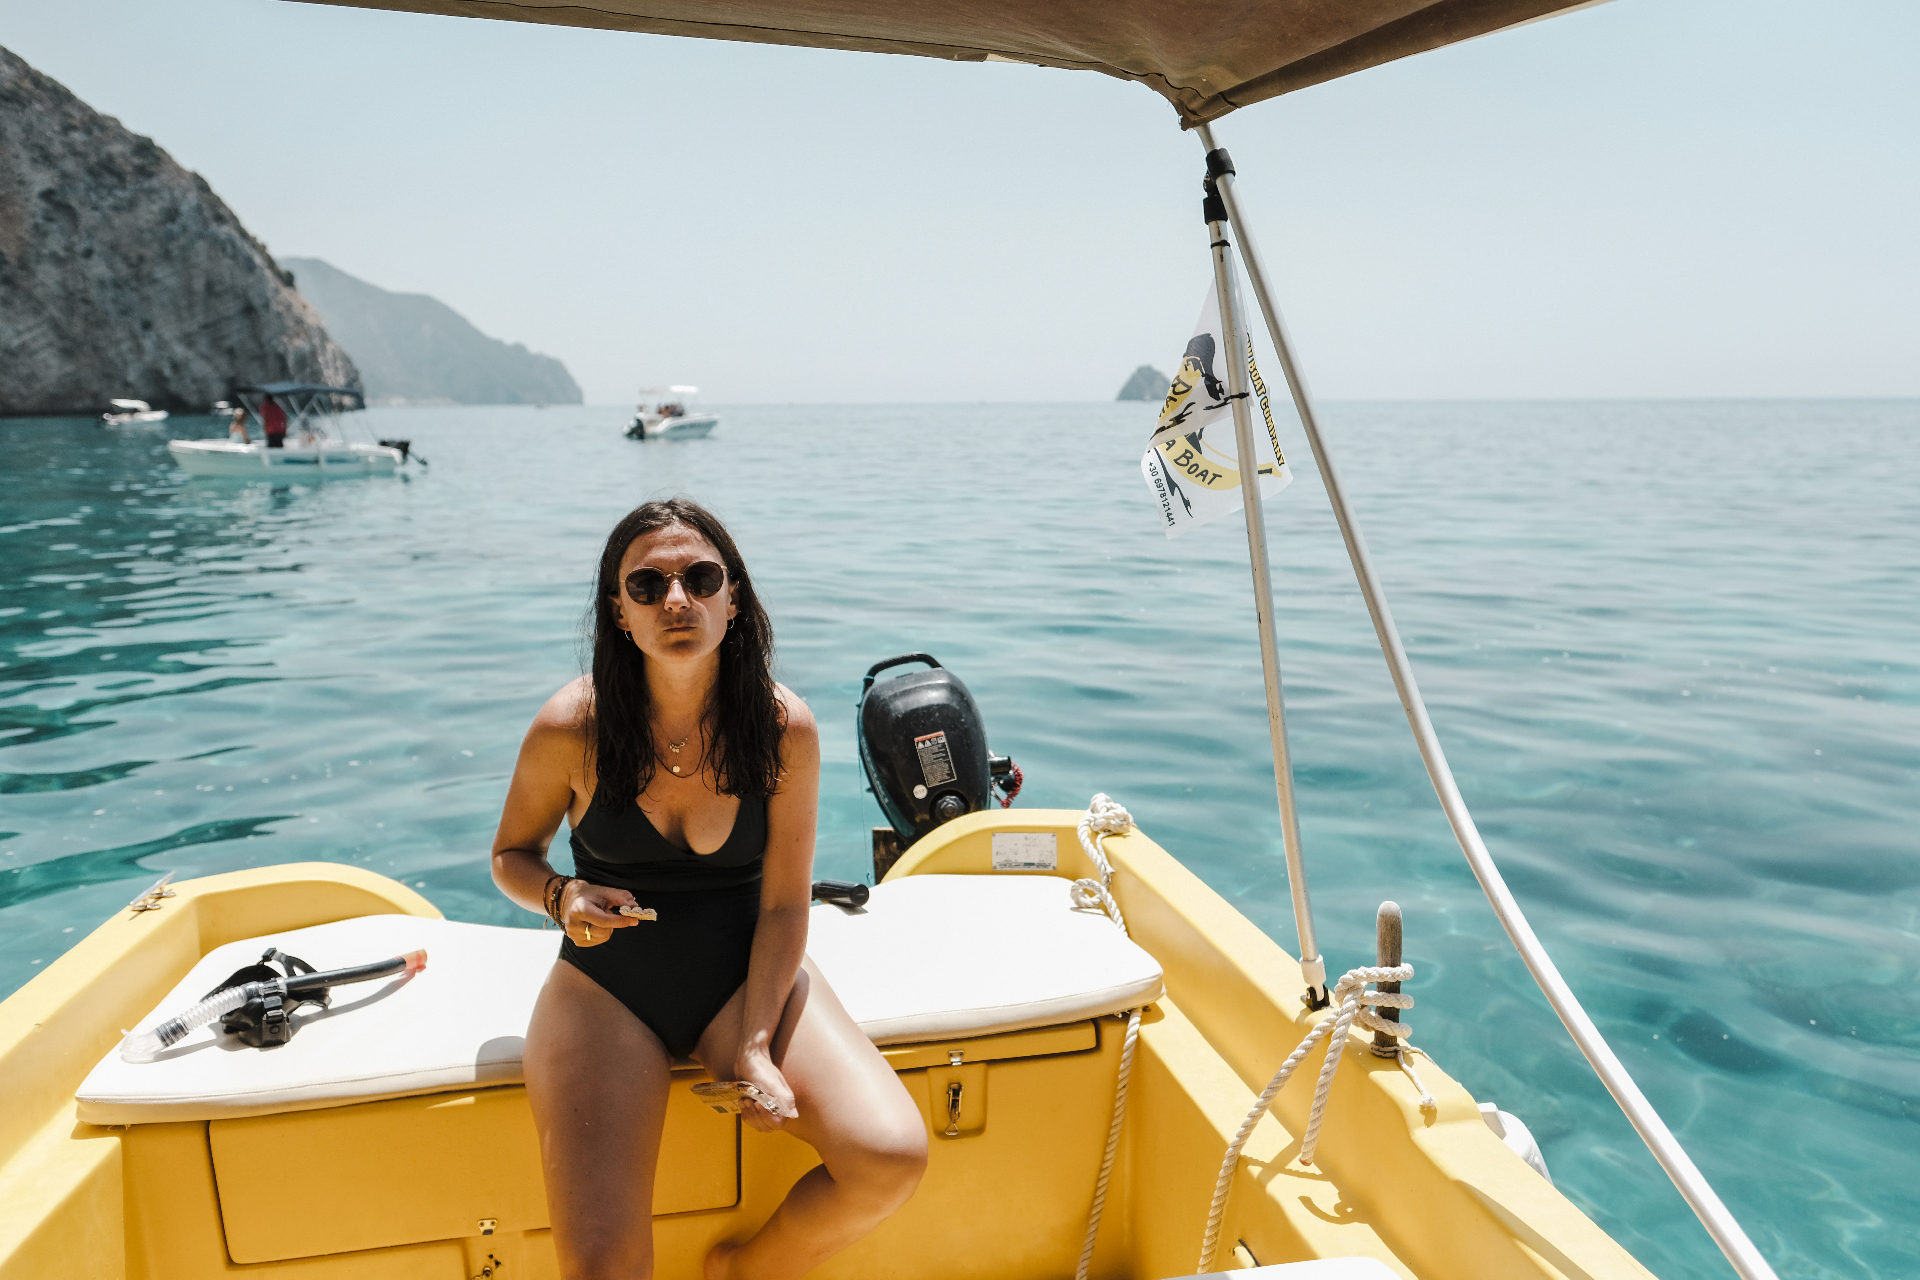 Girl sitting on a yellow boat, weekend in Greece